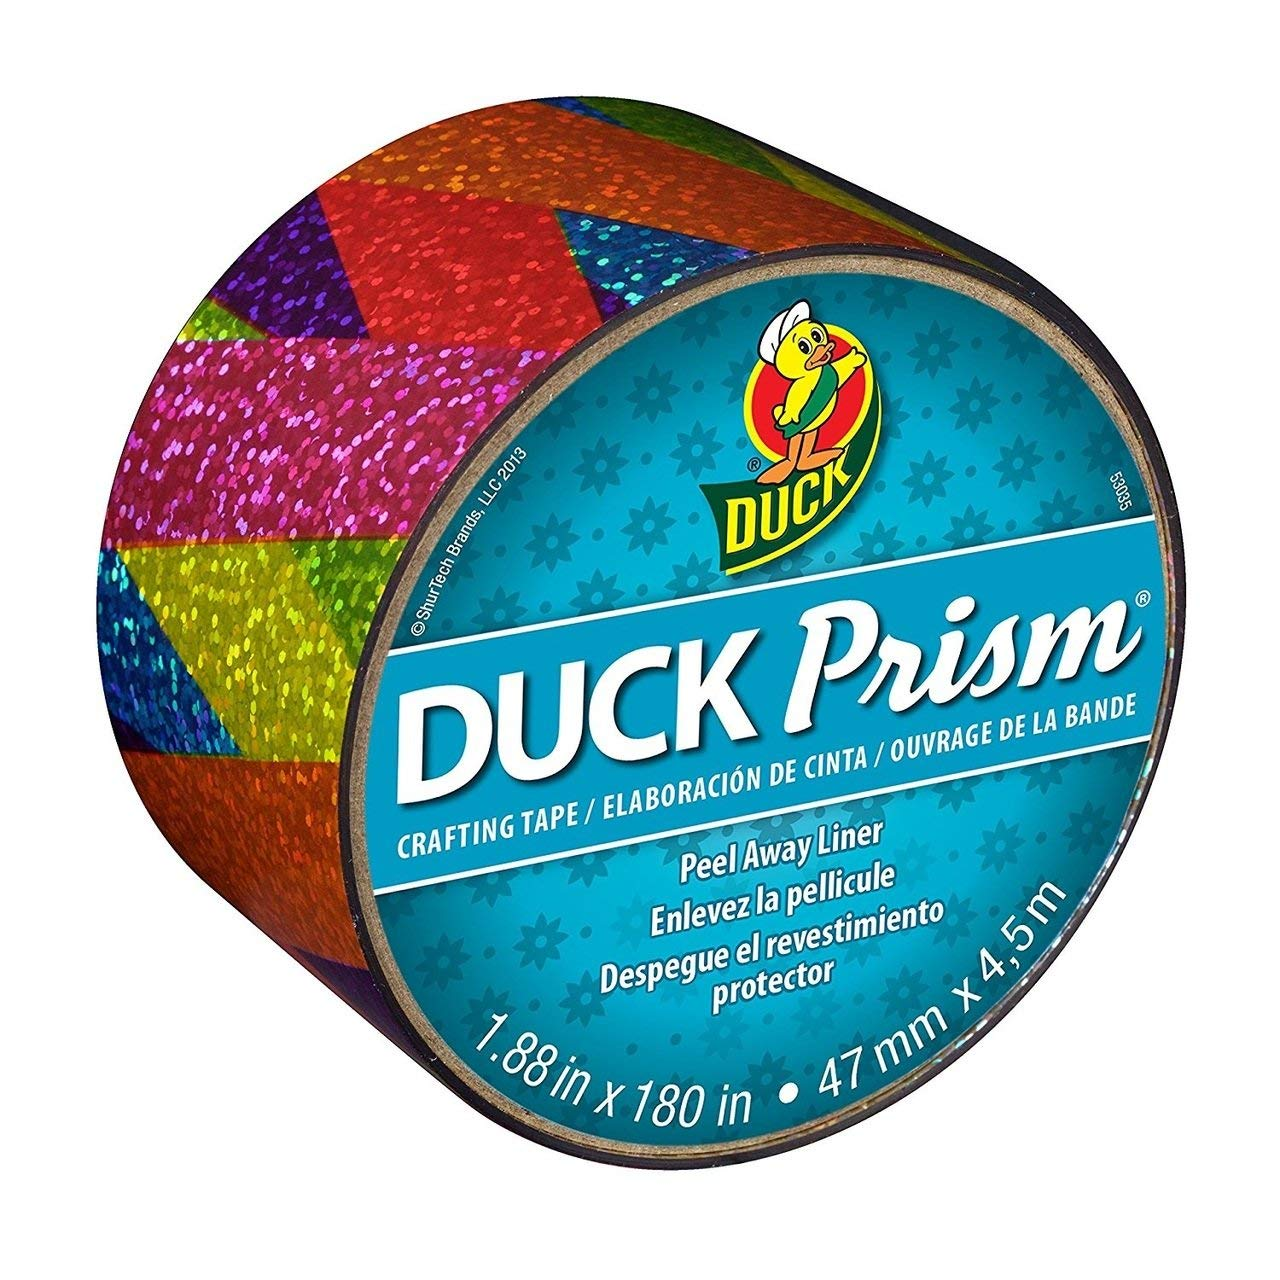 "Bulk Prism Crafting Tape, Rainbow Ribbon, 1.88""x 180"": Duck Brand 283705 (84 Prism Tape Rolls)"